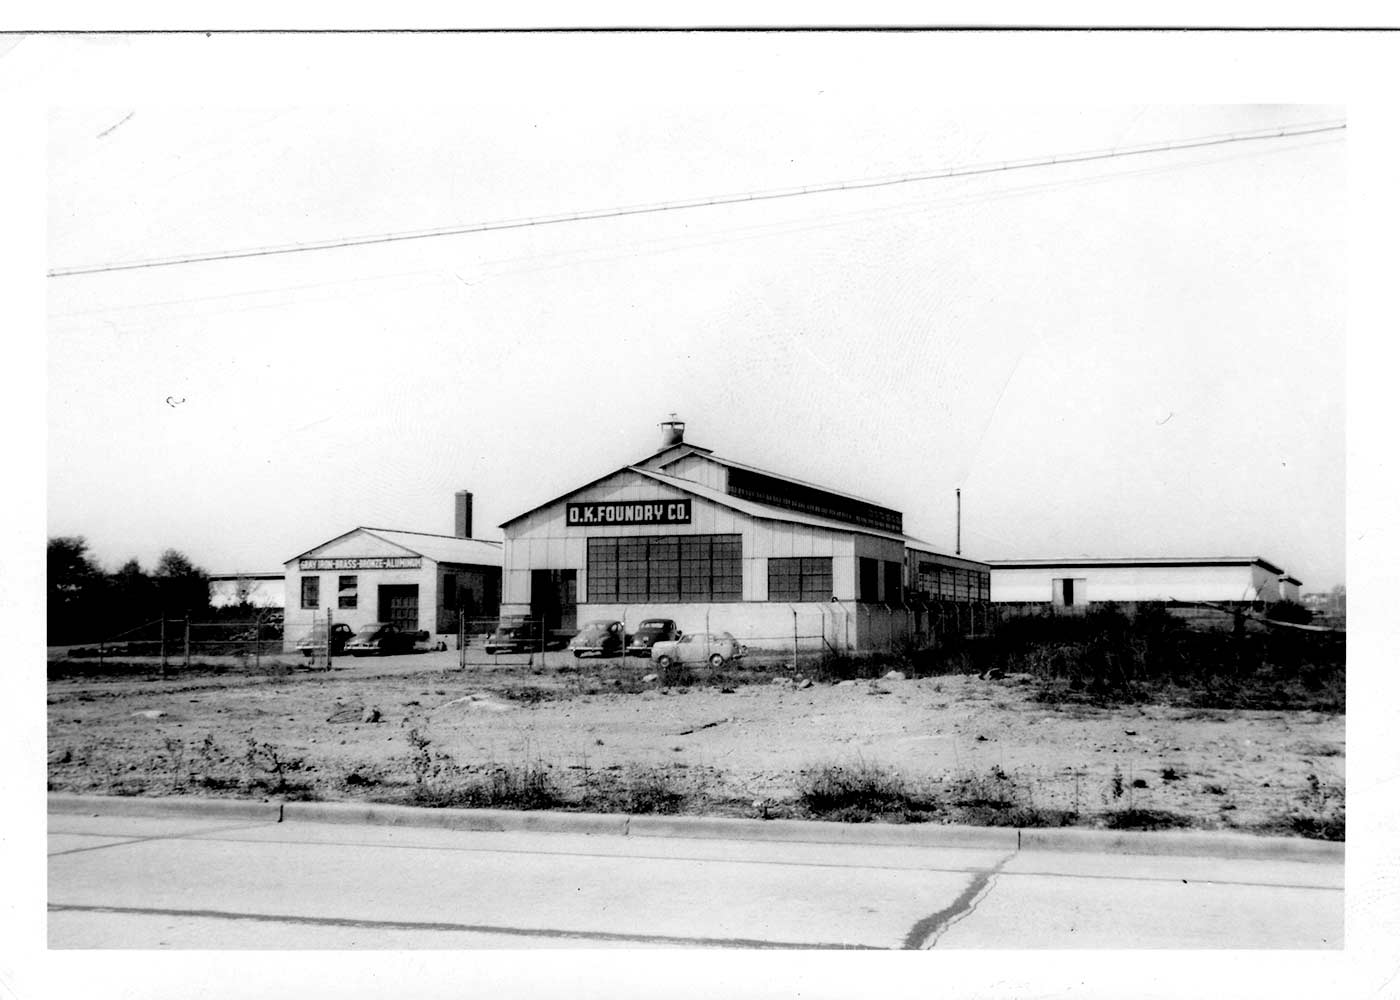 OK Foundry building in 1947.